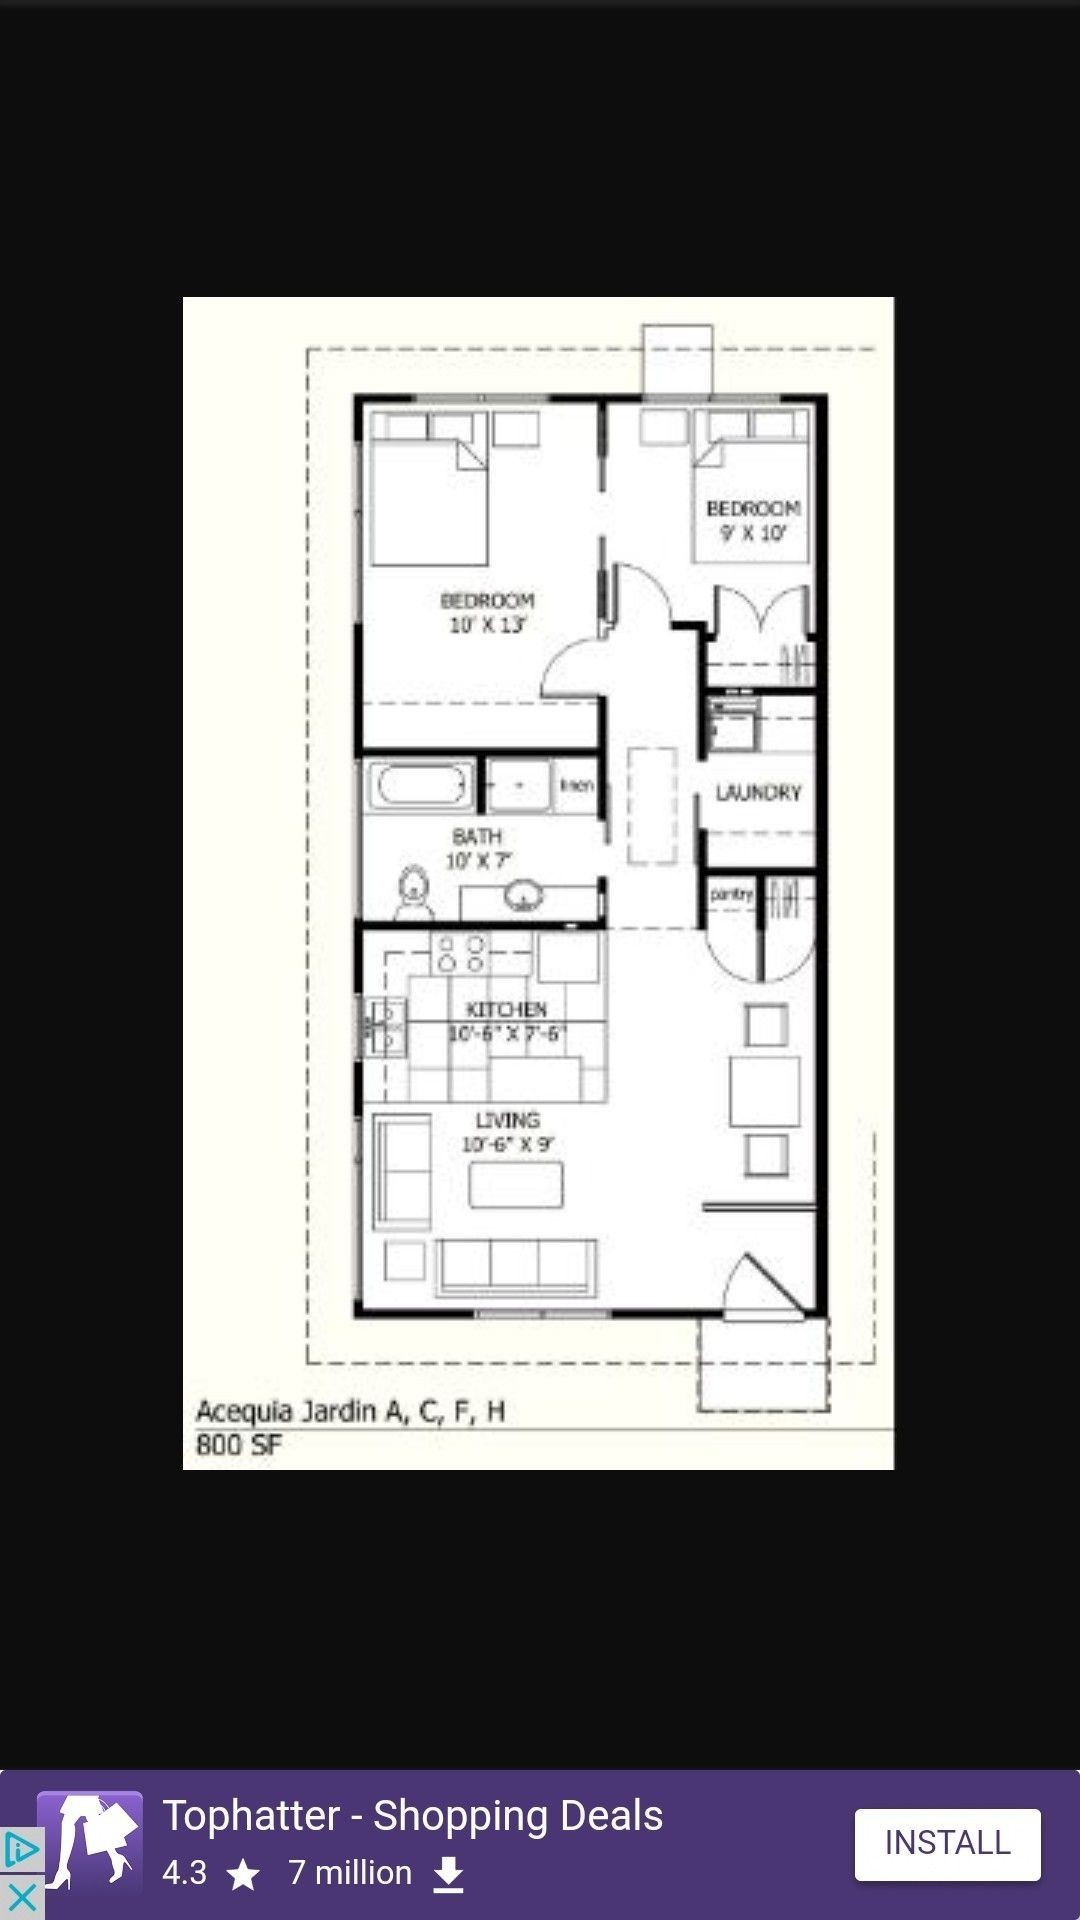 Desain Rumah Minimalis 6 X 12 Desain Rumah Minimalis Modern 6 X 9 Ideal Pin by